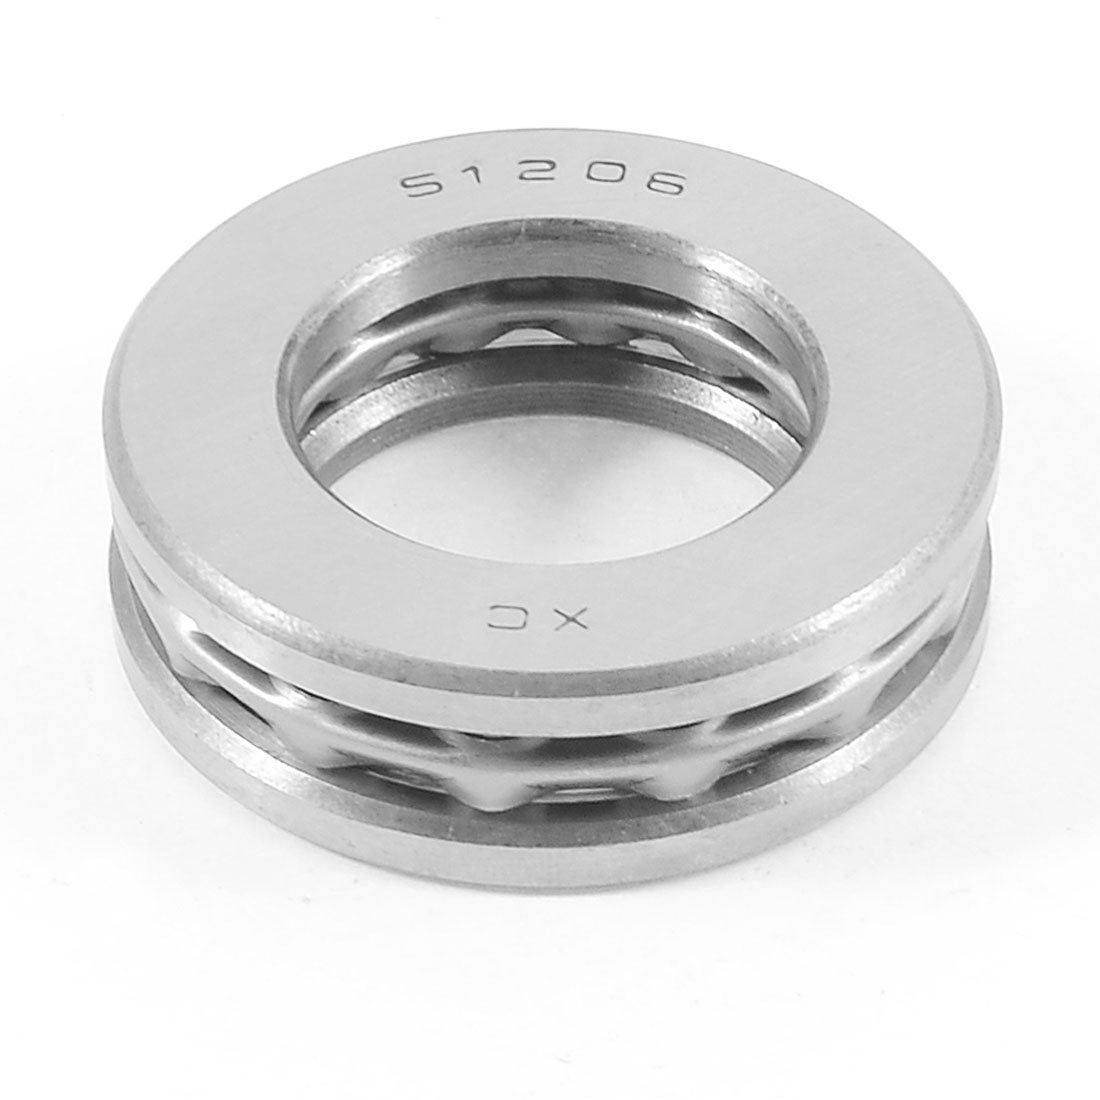 SuperWarehouse a13050600ux0330 Replacement 52mm x 30mm x 16mm Single Direction Thrust Ball Bearing 51206 1.18 ID Aluminium Alloy 2.05 OD swh716505ca168705